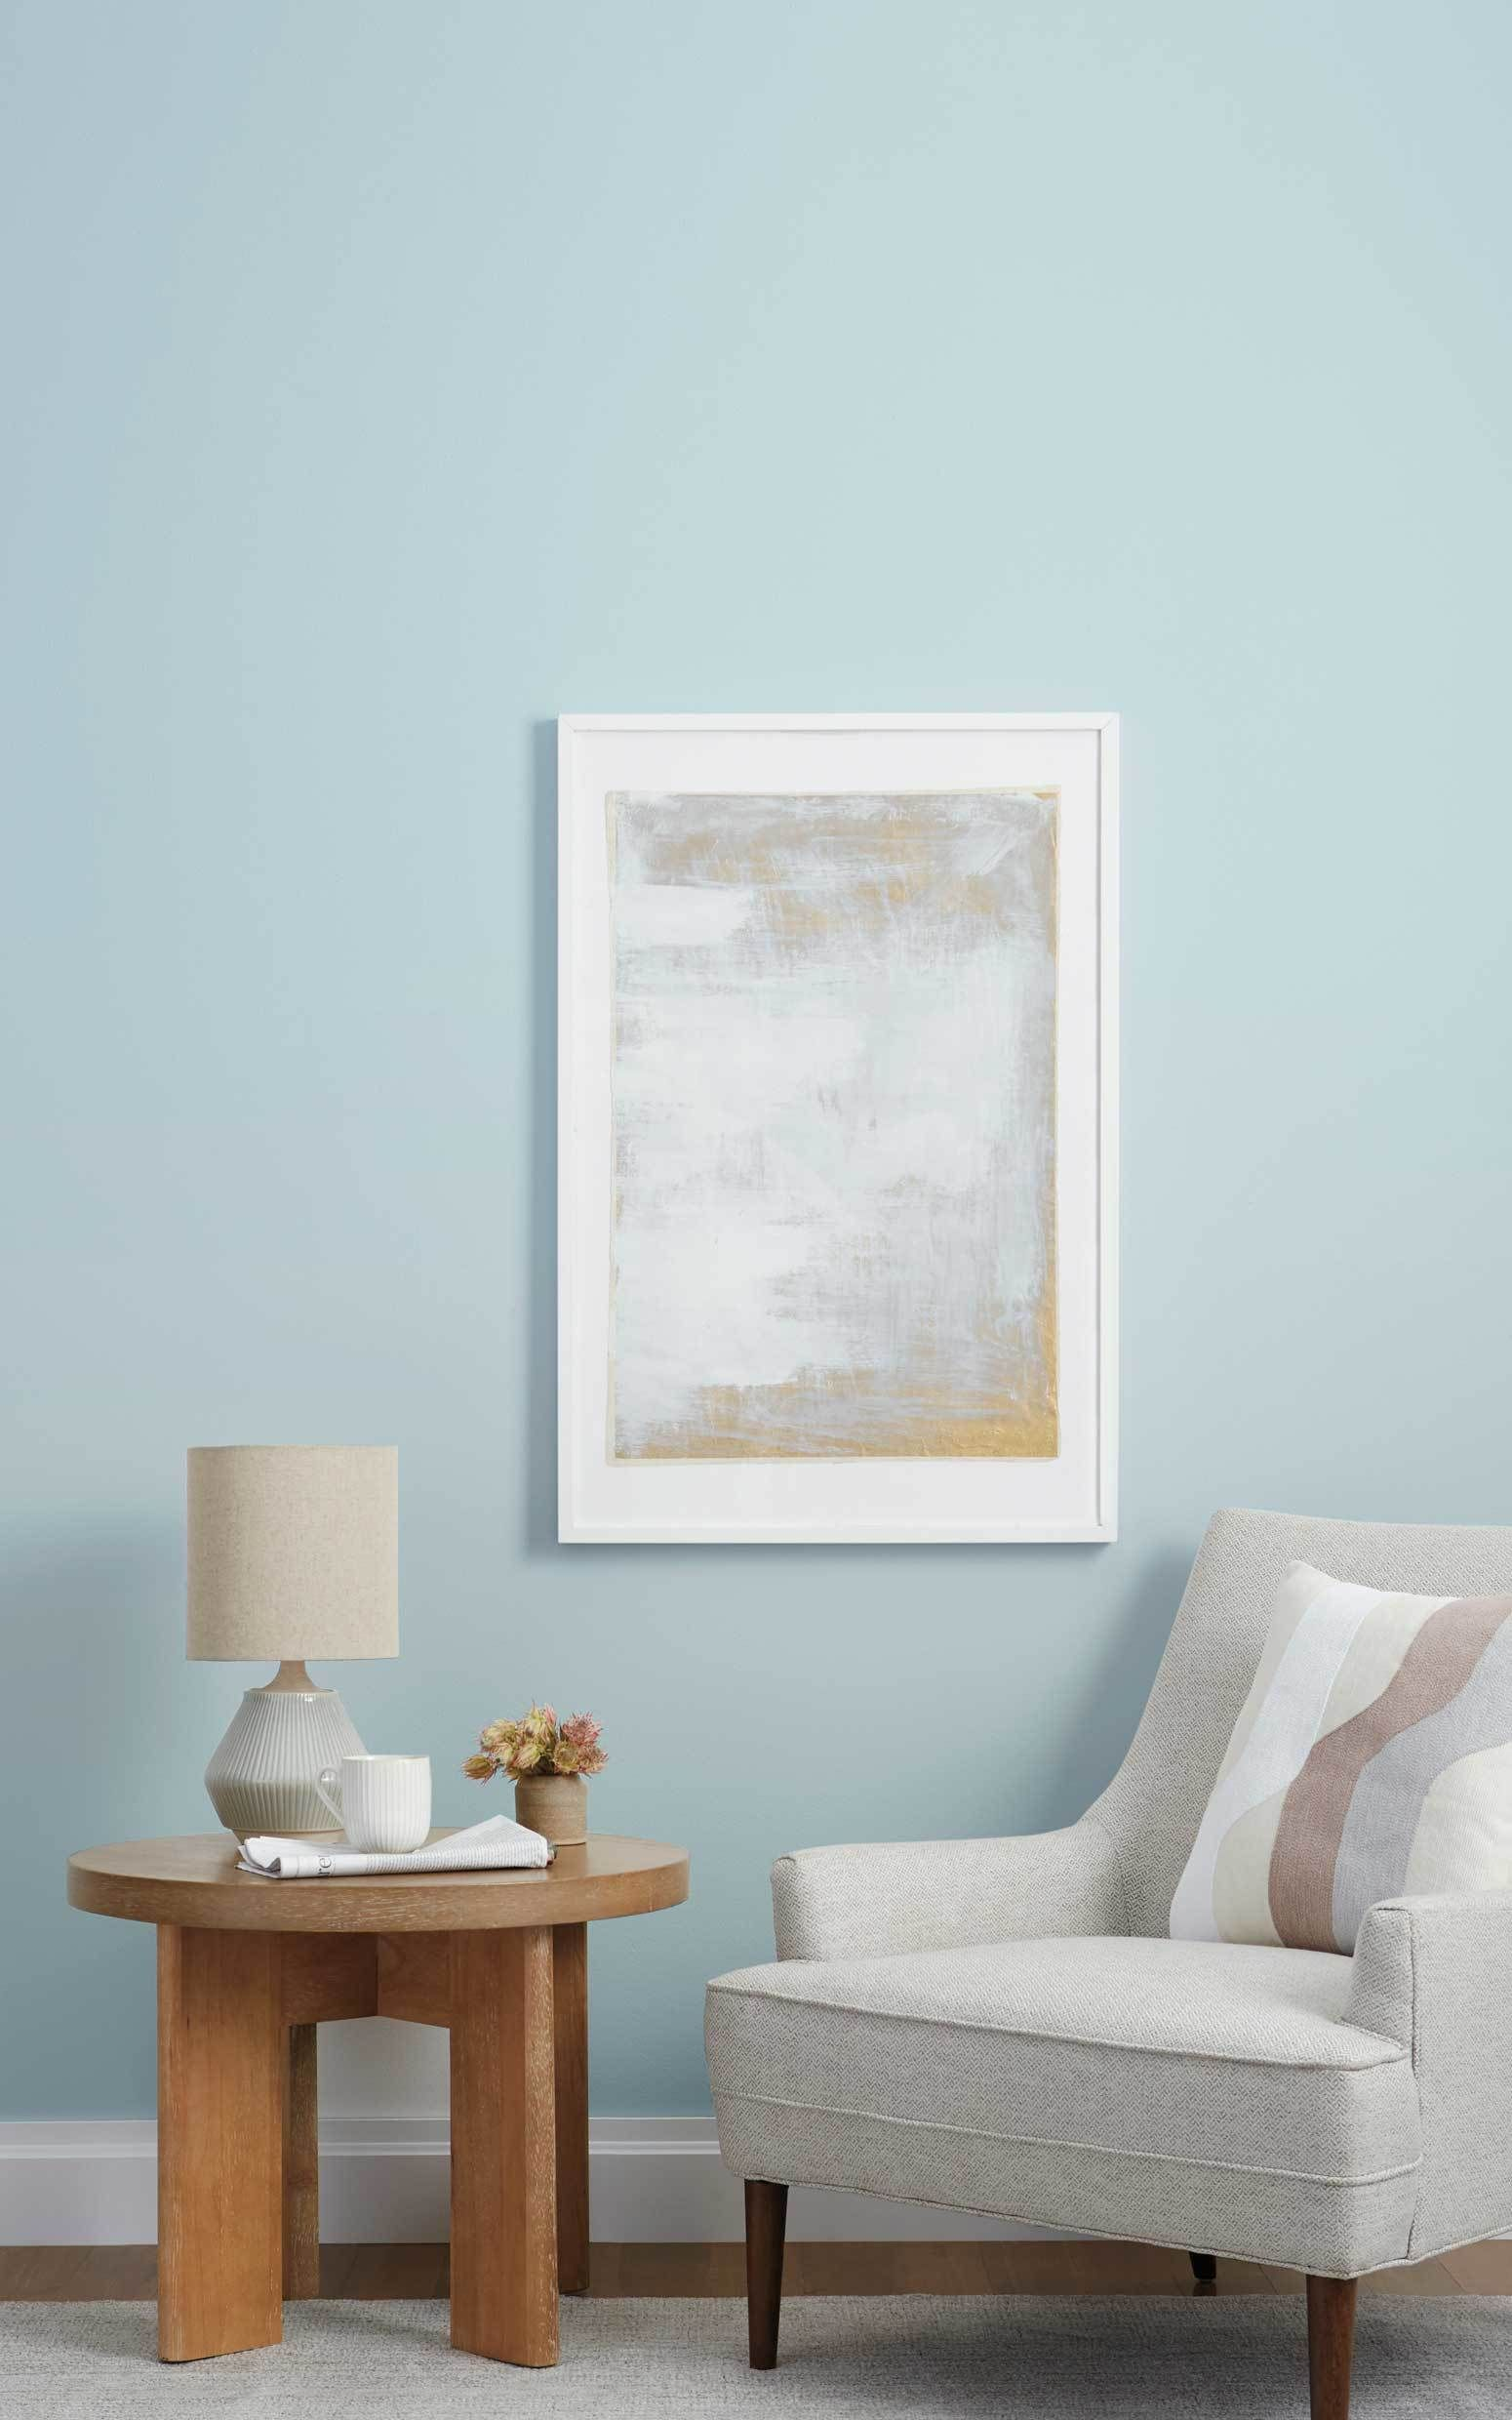 Frozen In 2021 Living Room Colors Light Blue Living Room Paint Colors For Living Room Bedroom blue paint colors